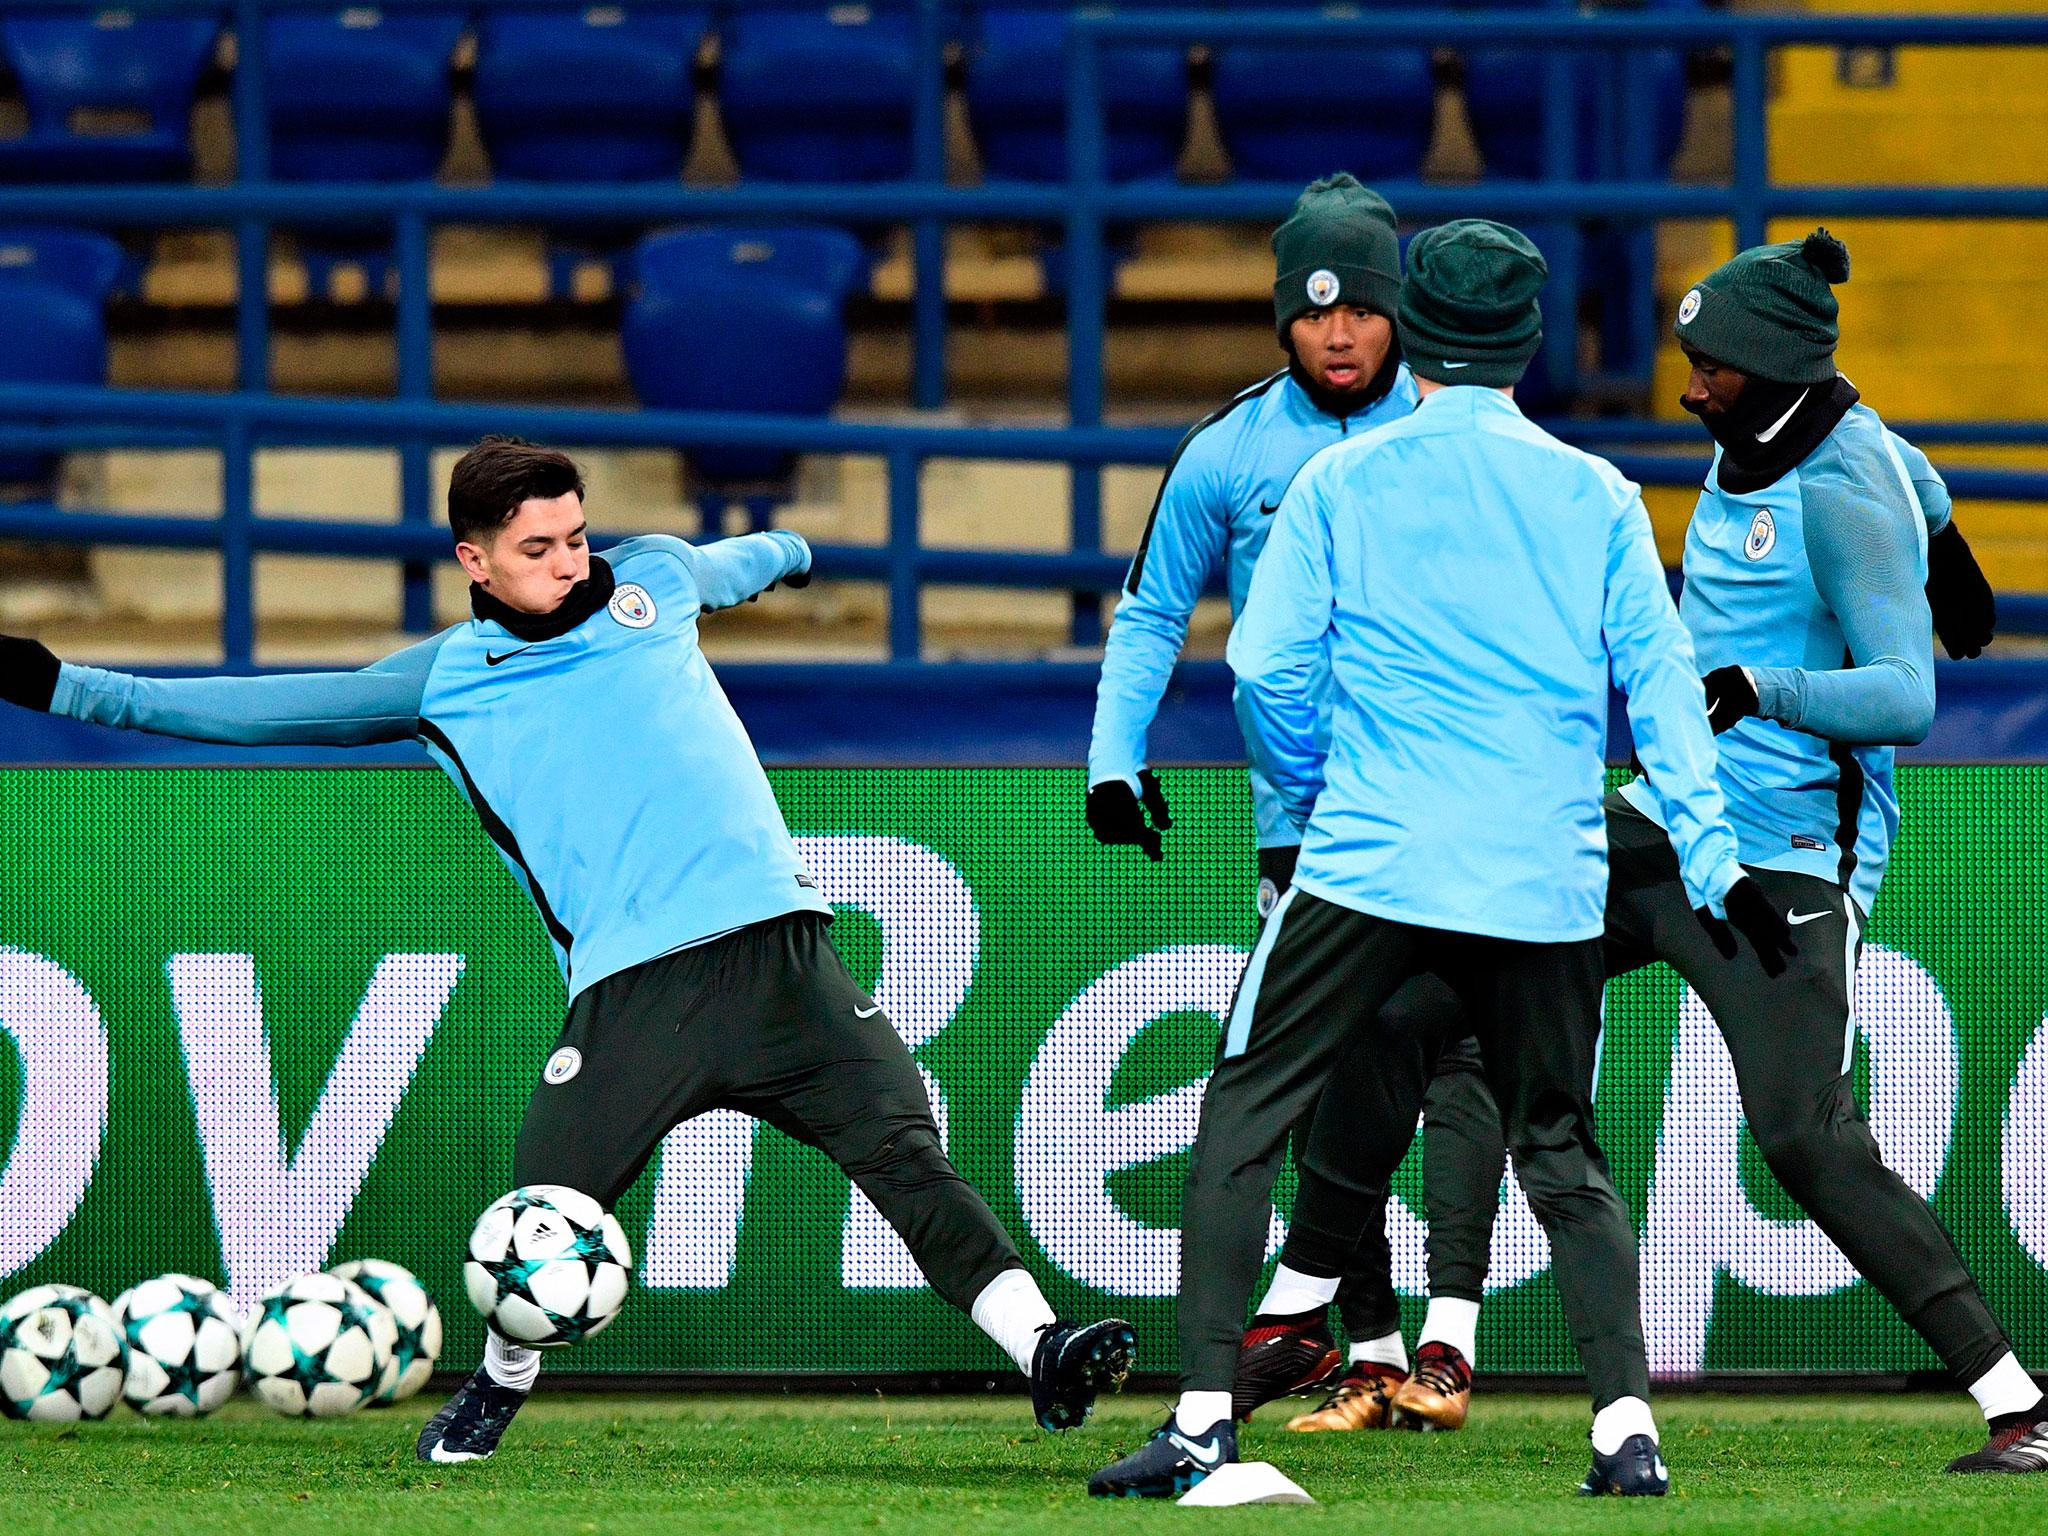 Shakhtar Donetsk vs Manchester City - Champions League live: What time does it start and where can I watch it?